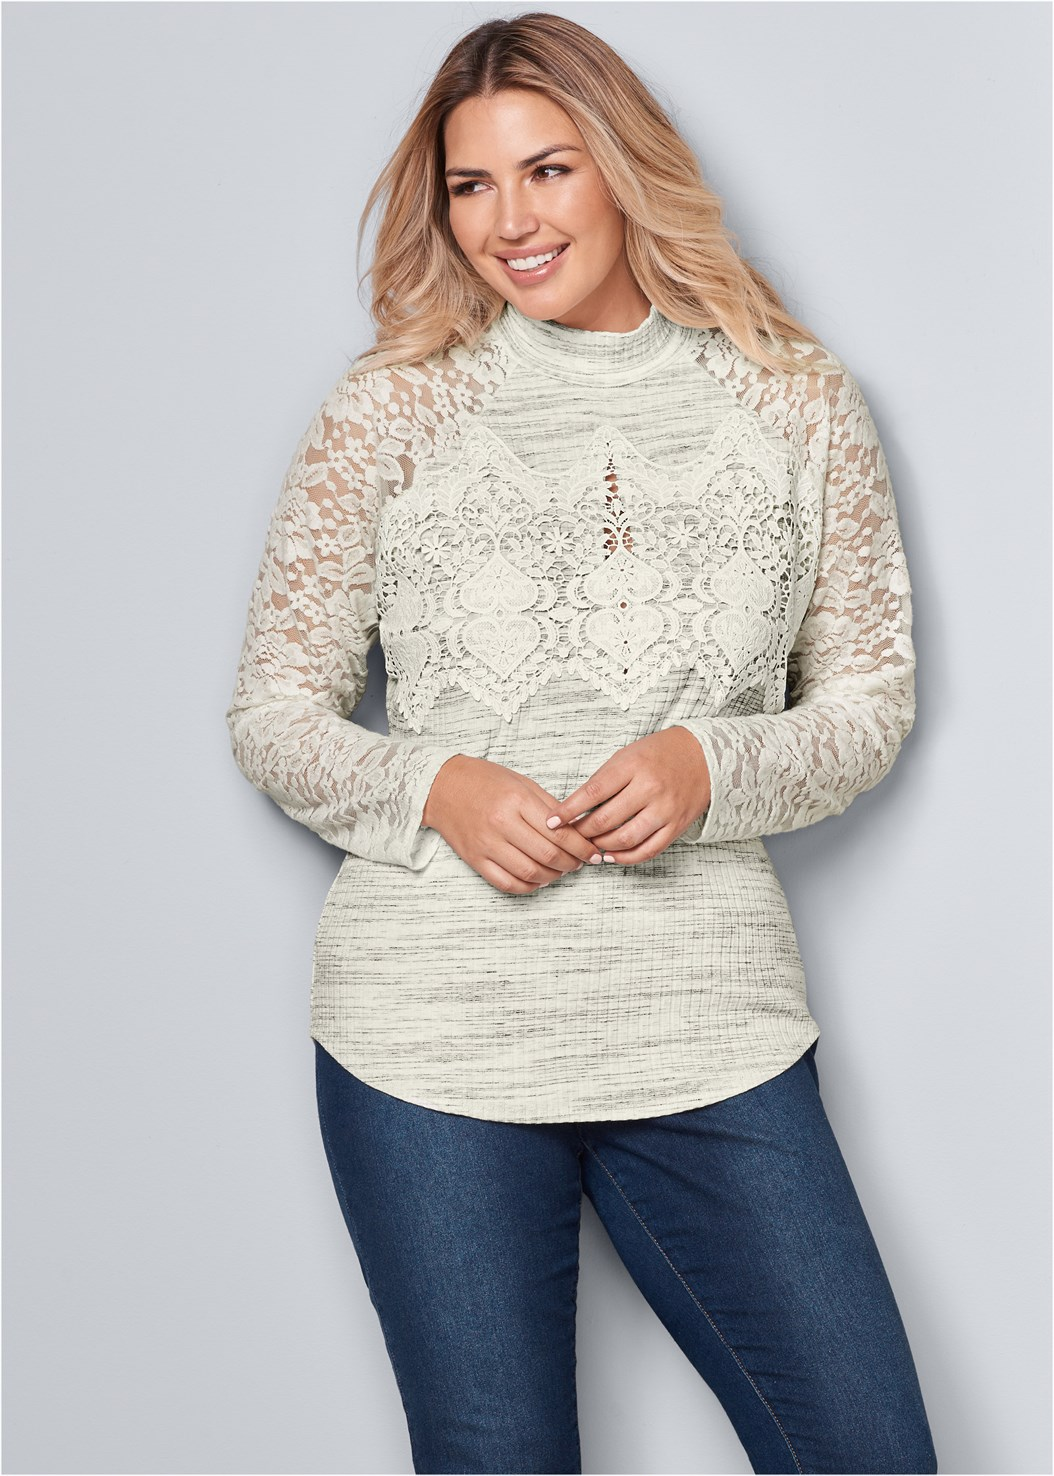 Lace Detail Mock Neck Top,Mid Rise Color Skinny Jeans,Wrap Stitch Detail Booties